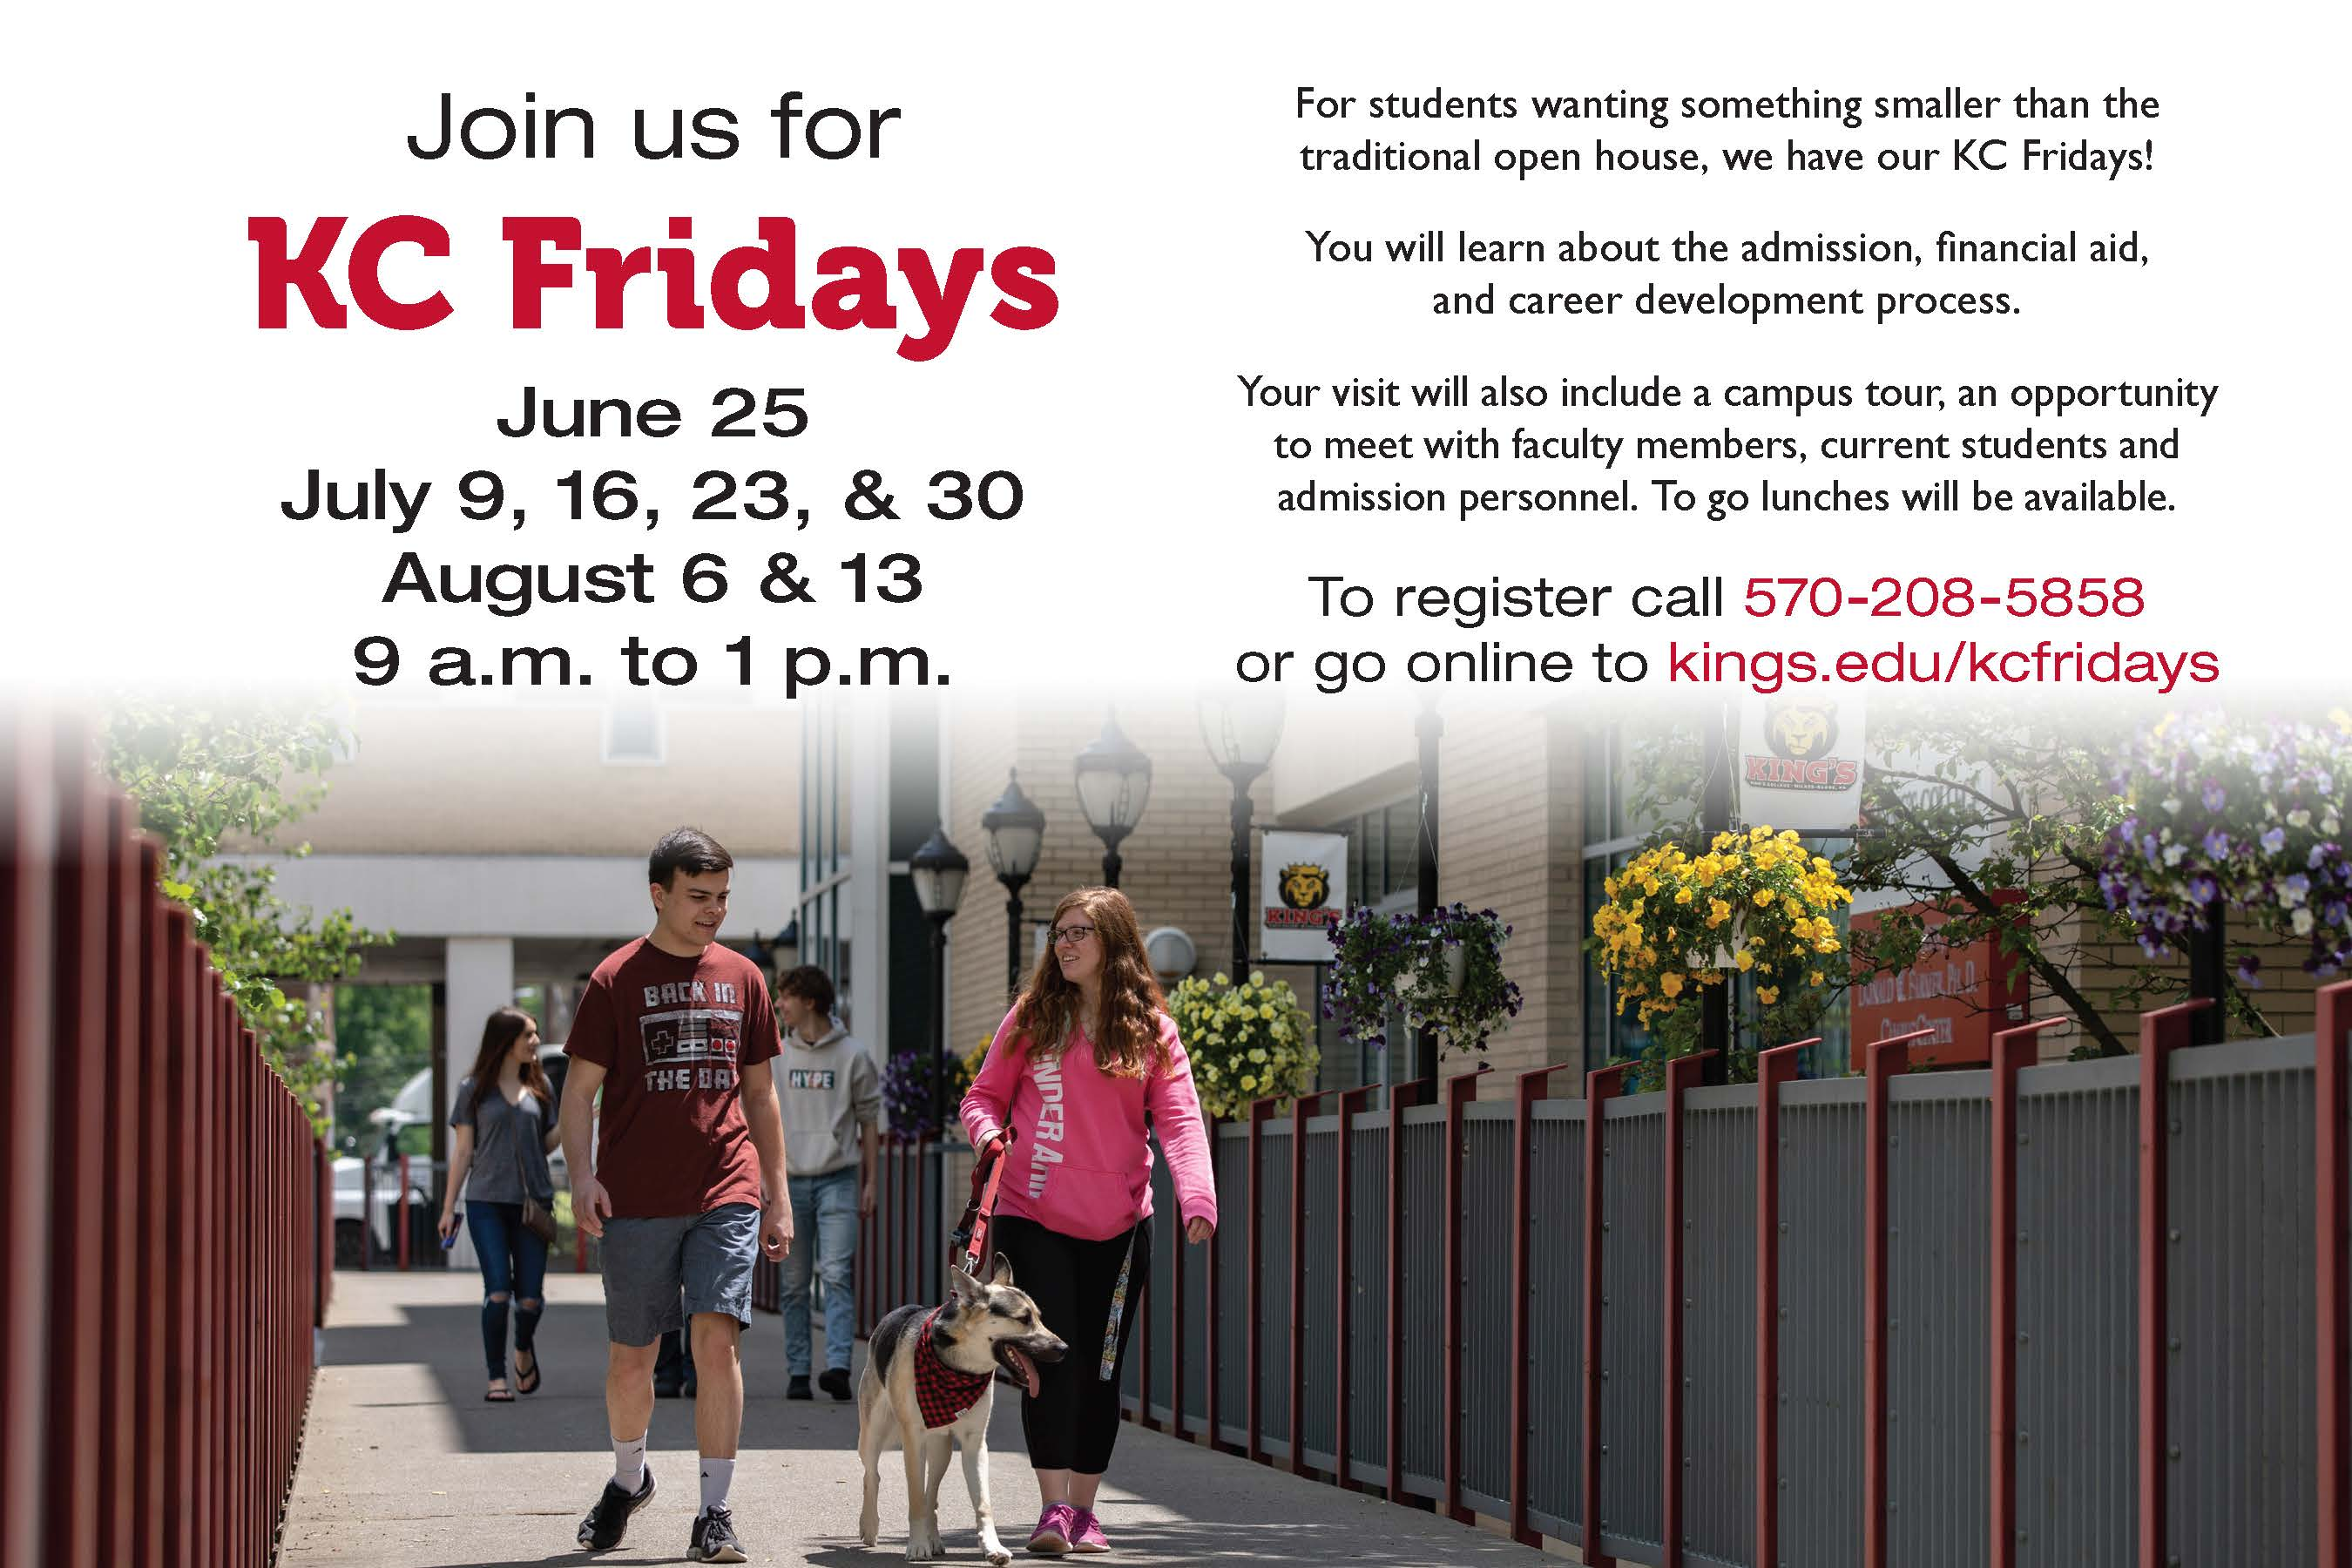 Advertisement for KC Friday program with text above a photo of students on Lanes Lane